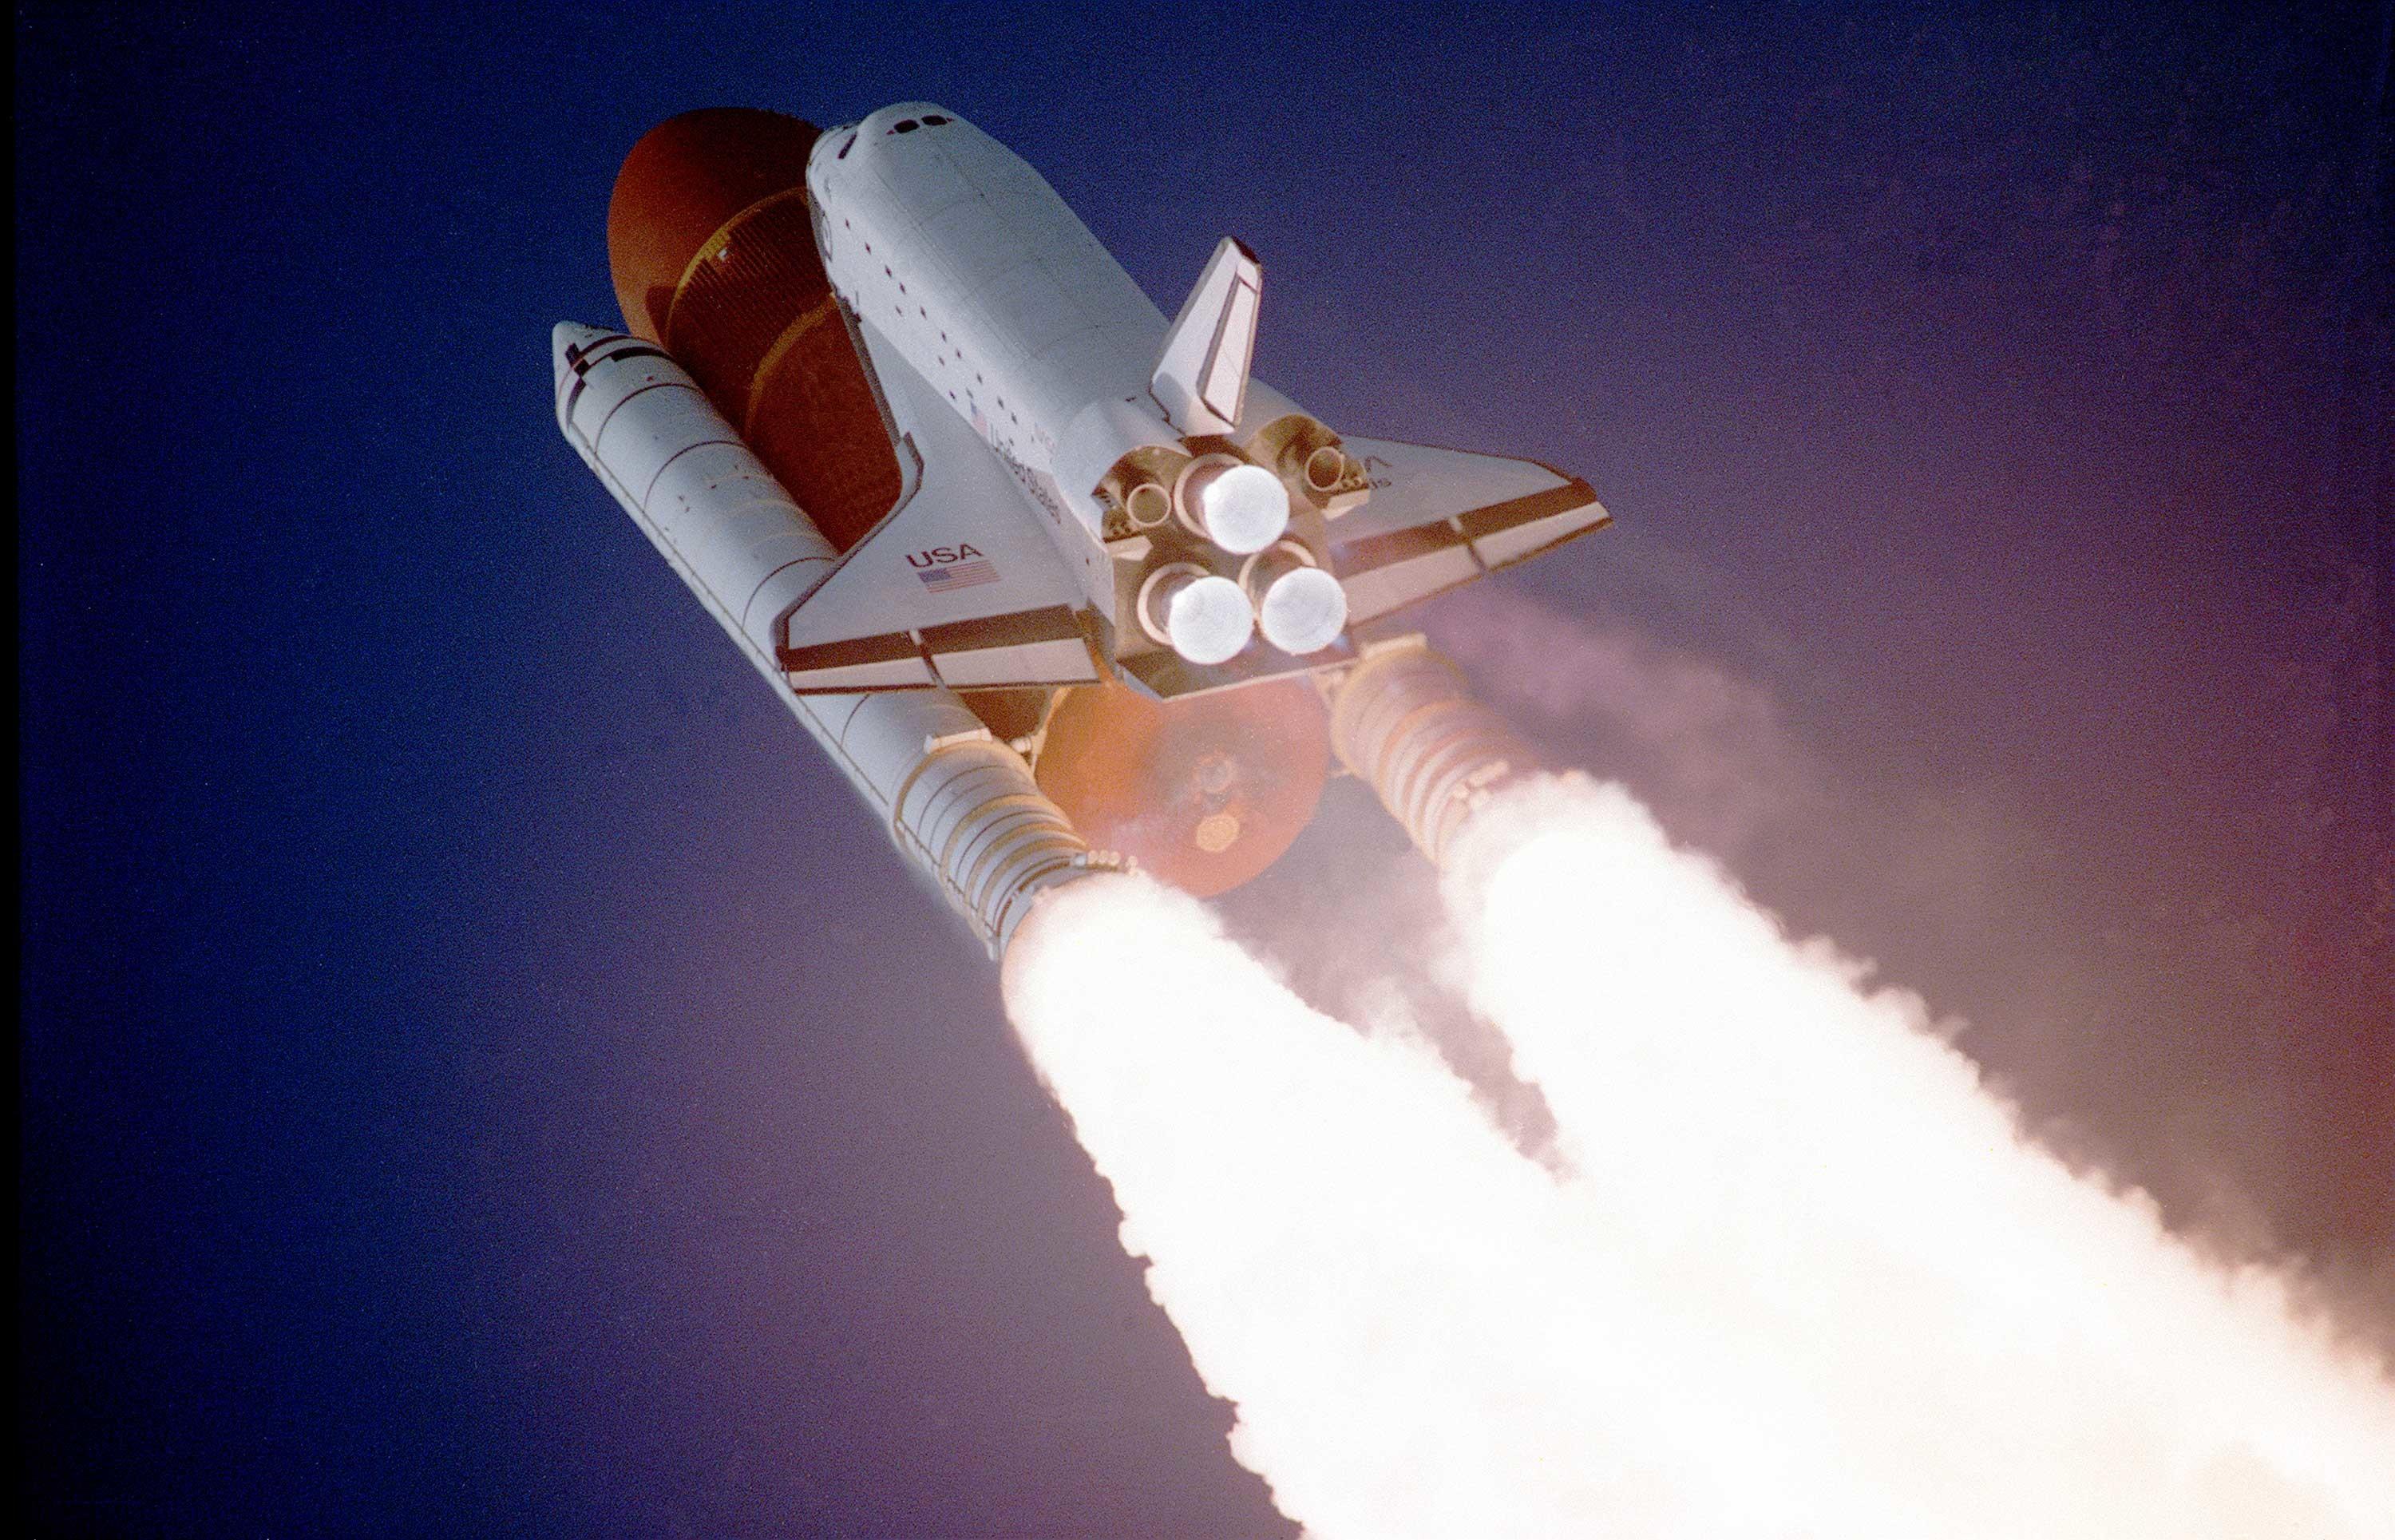 Space Shuttle Wallpaper 1920x1080 73 images 3000x1929